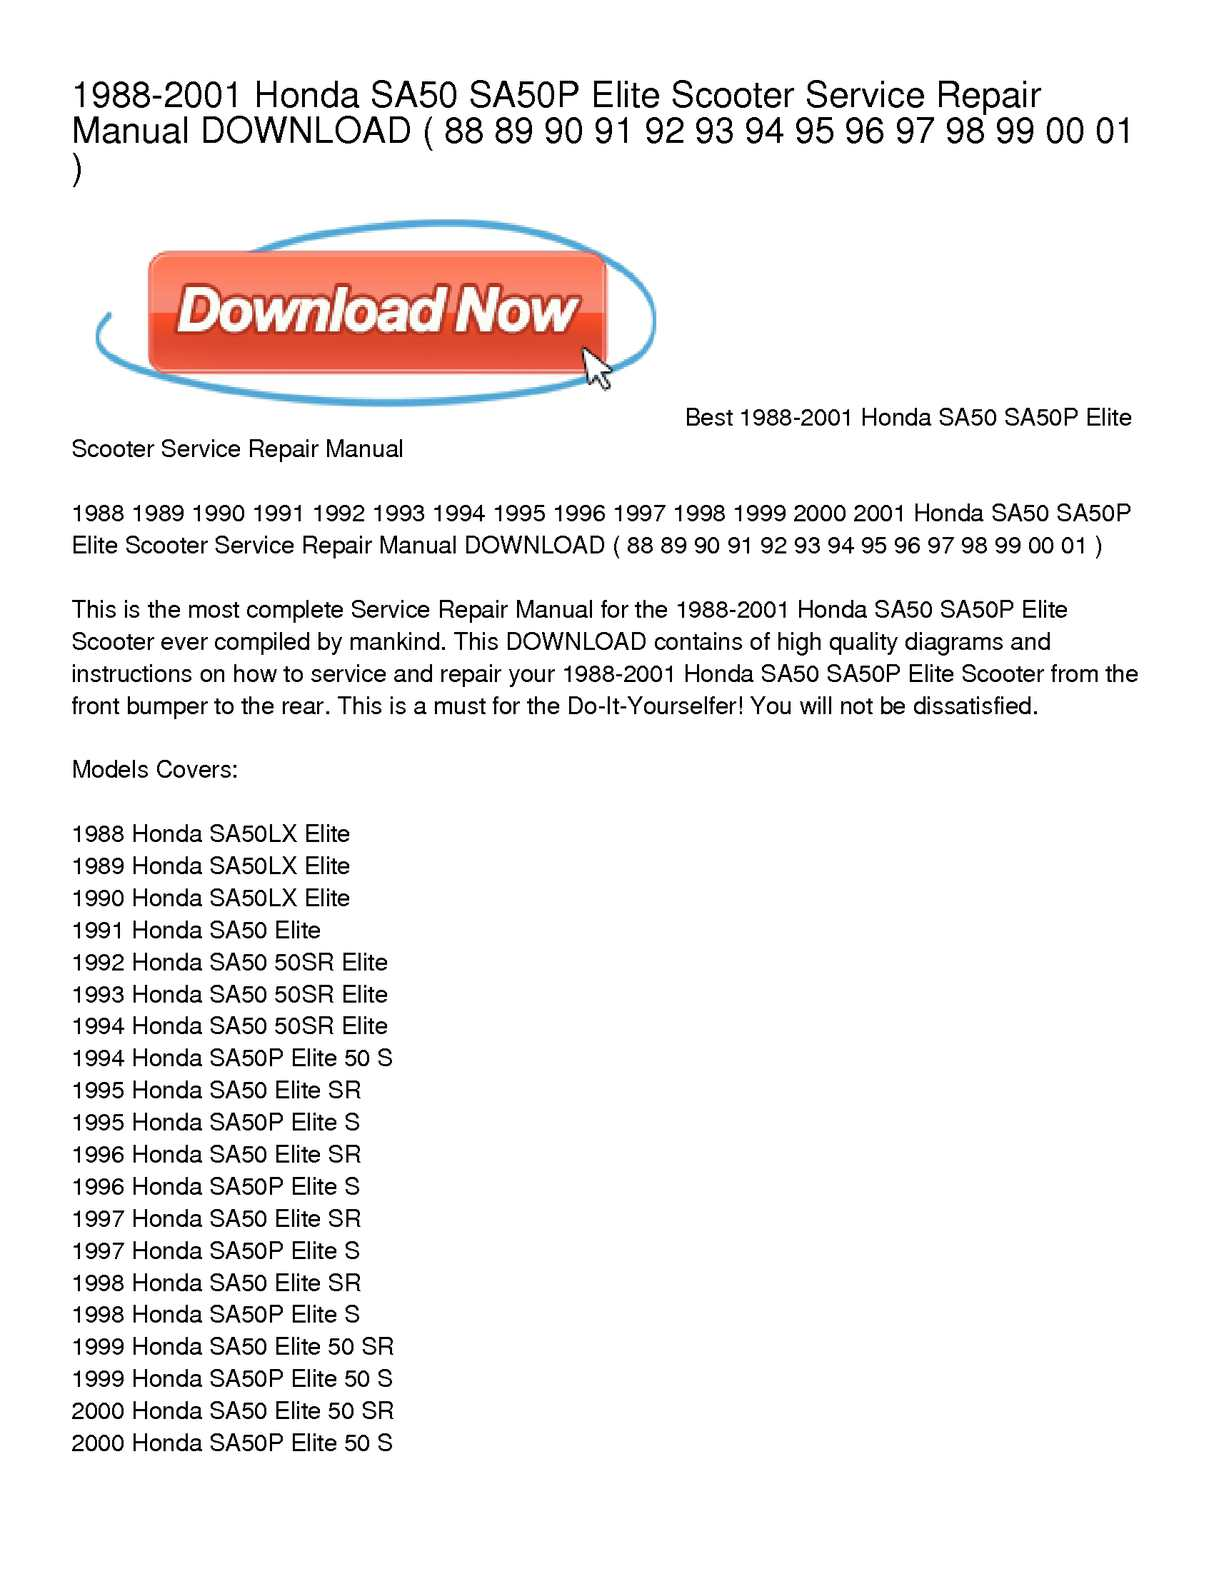 2001 Honda Elite Scooter Wiring Diagram Diy Enthusiasts 1964 50 Diagrams Data Calam O 1988 Sa50 Sa50p Service Repair Rh Calameo Com Trailer C70 Pdf